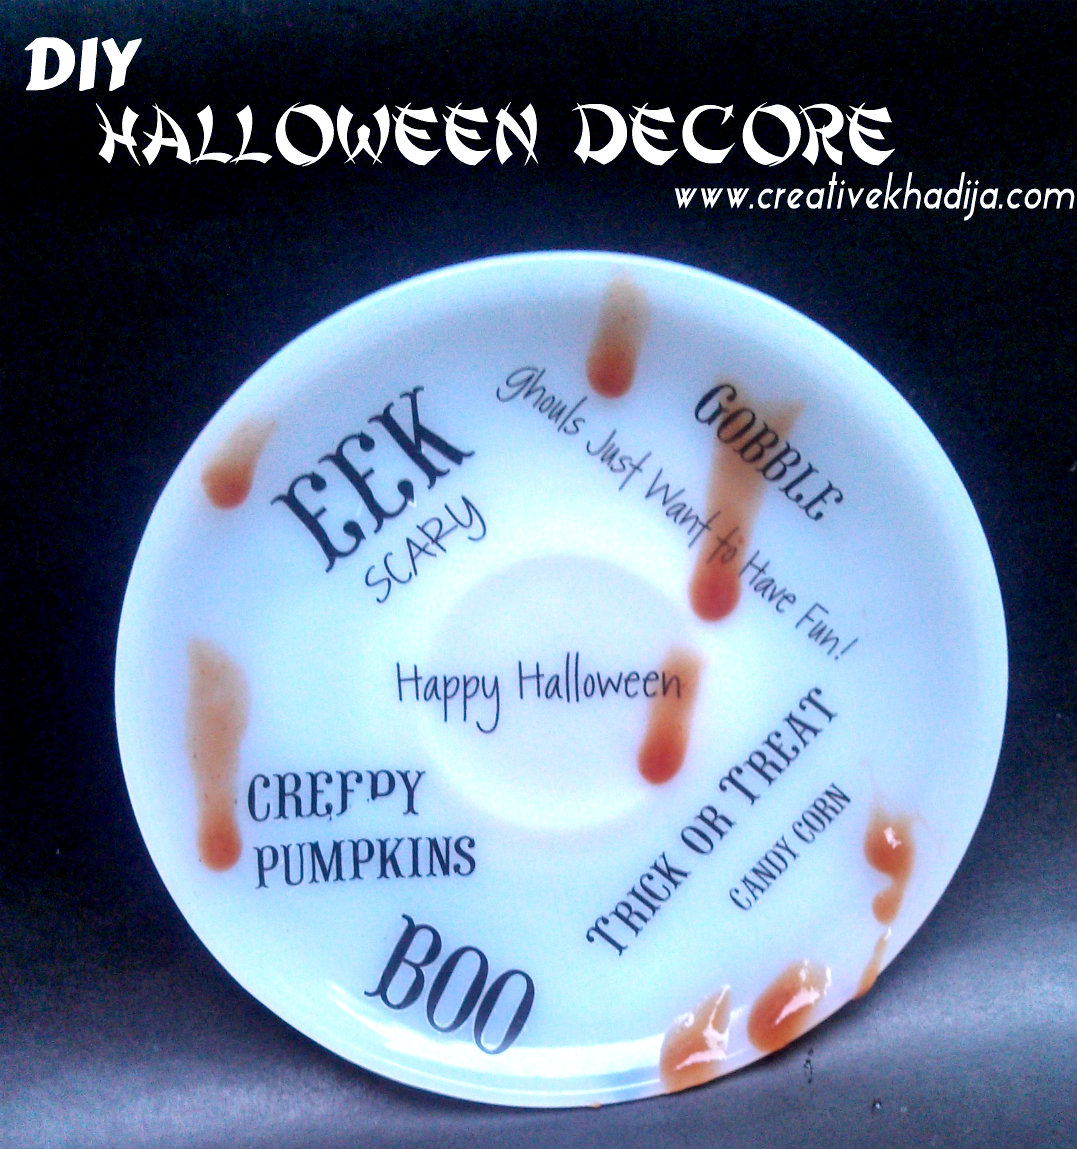 Last Minute Halloween Decor DIY Ideas